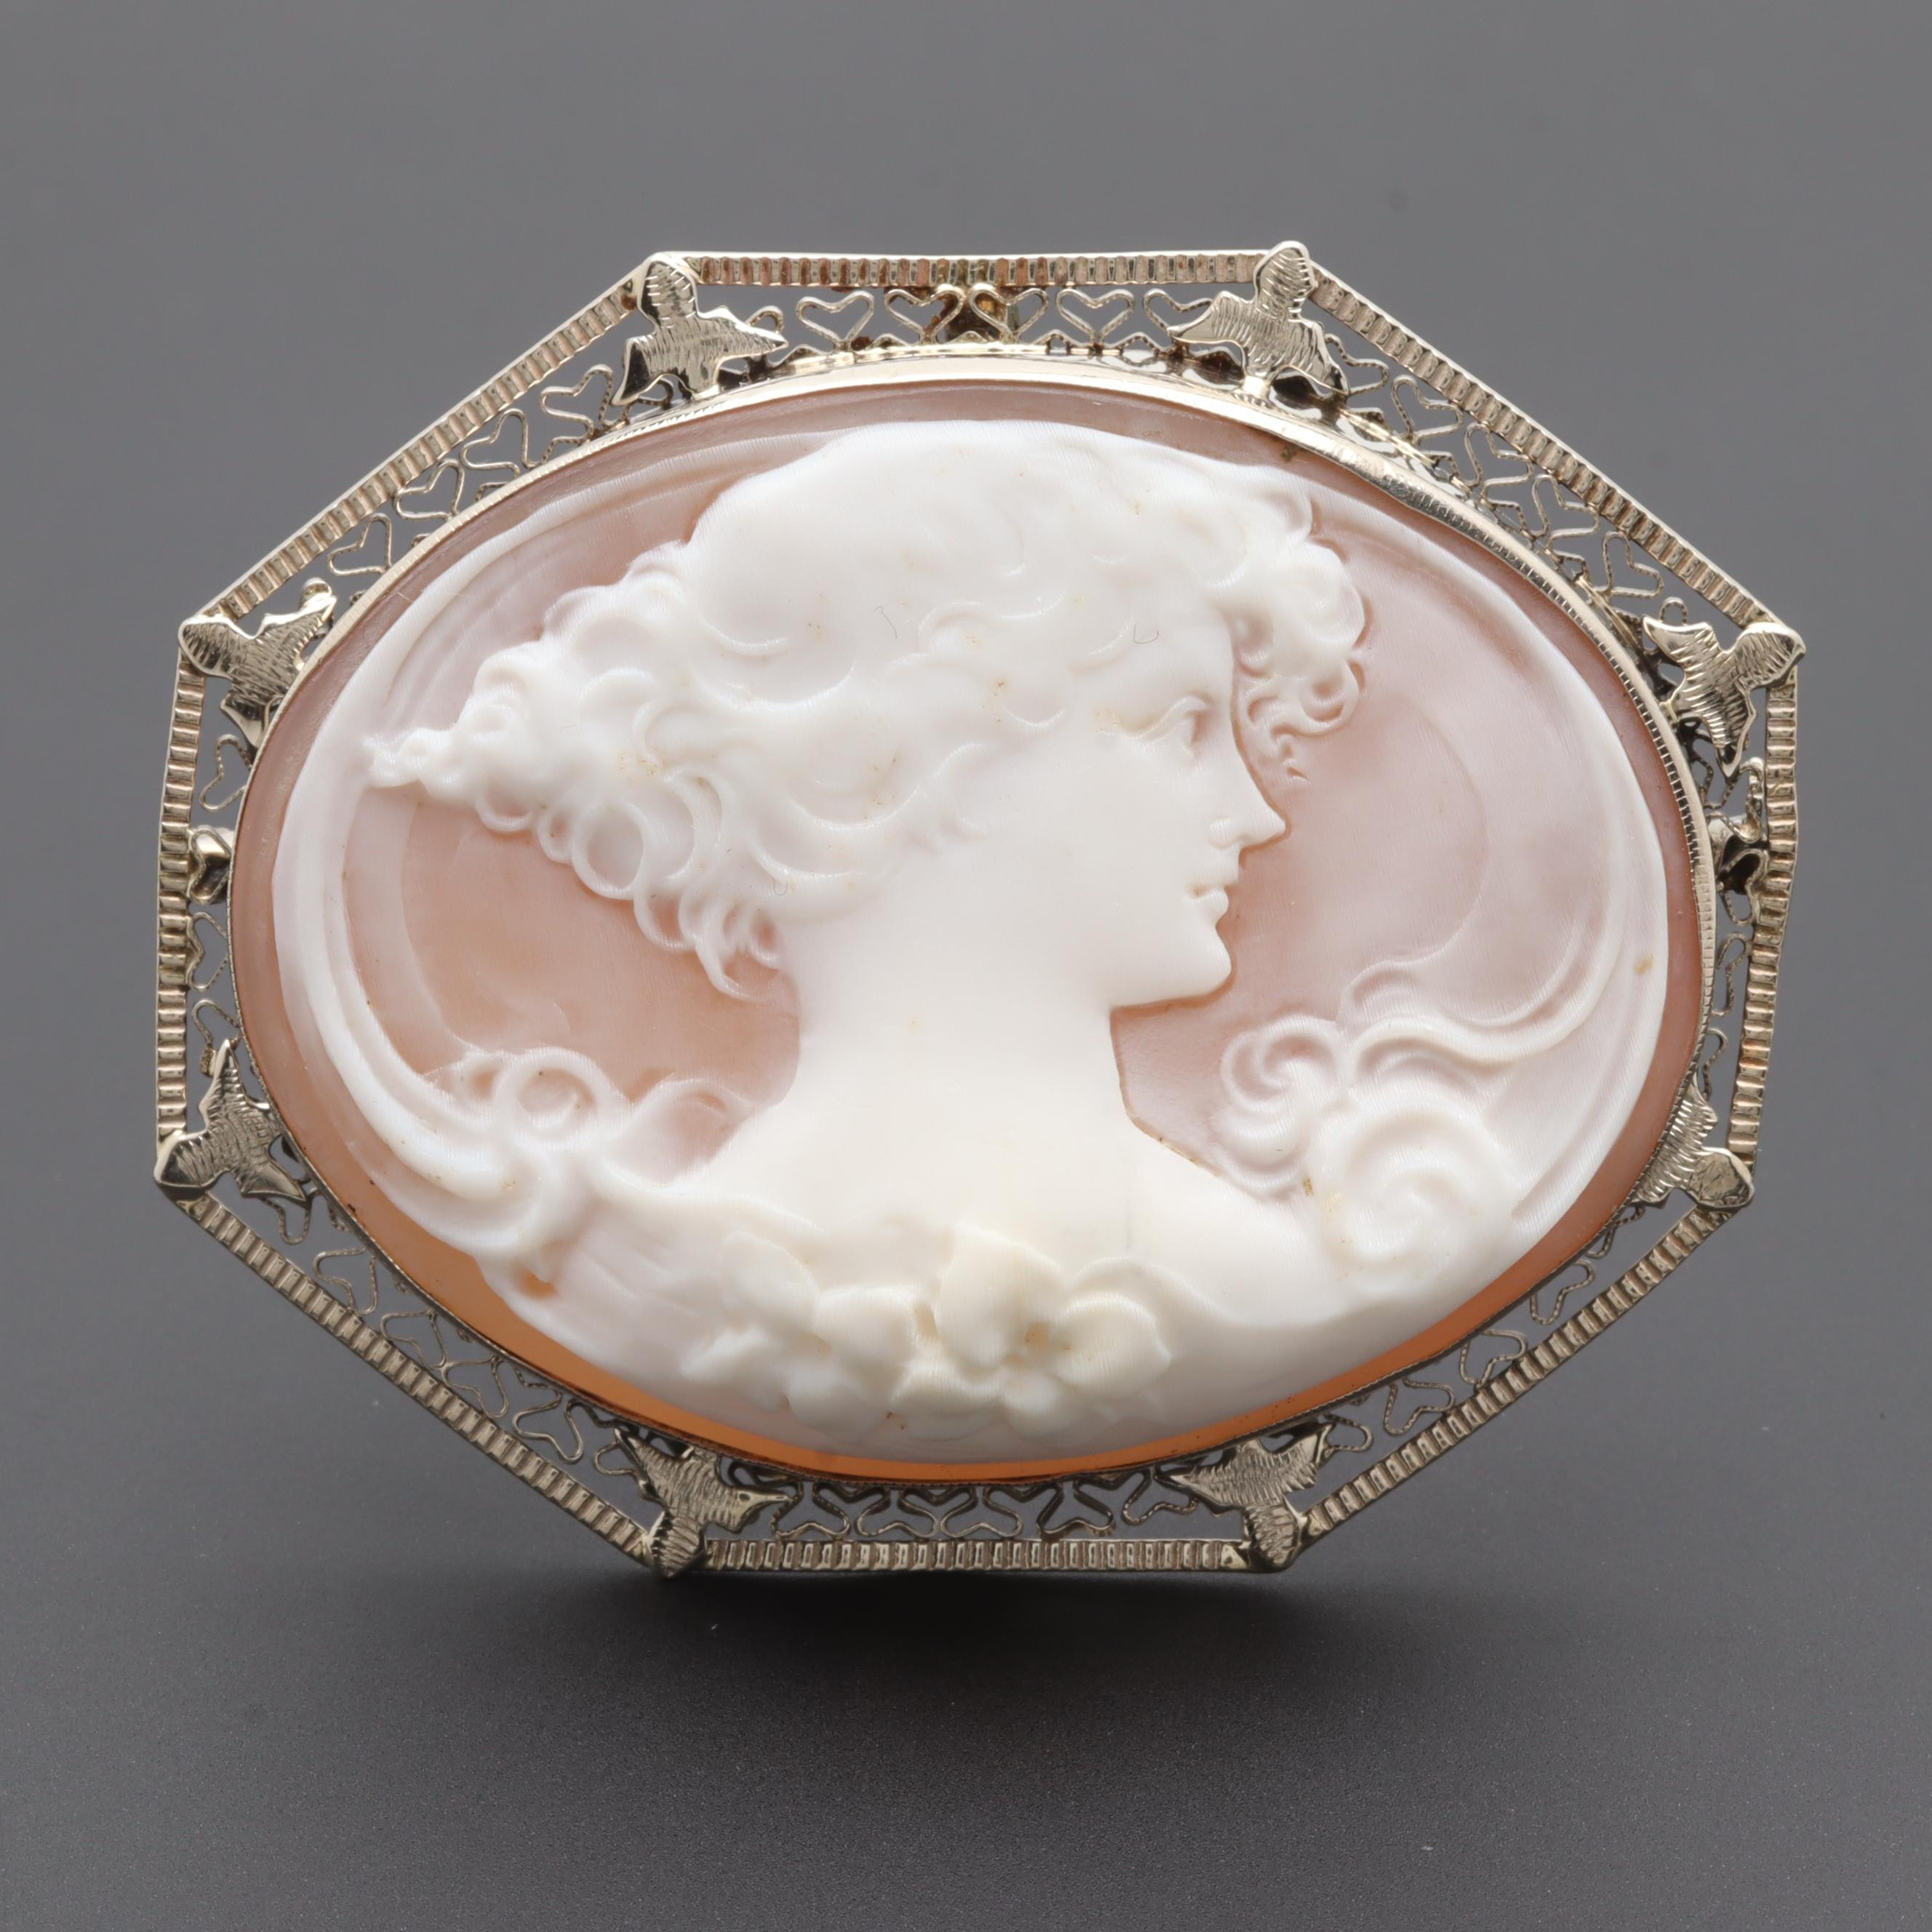 Vintage 14K and 10K White Gold Shell Cameo Converter Brooch